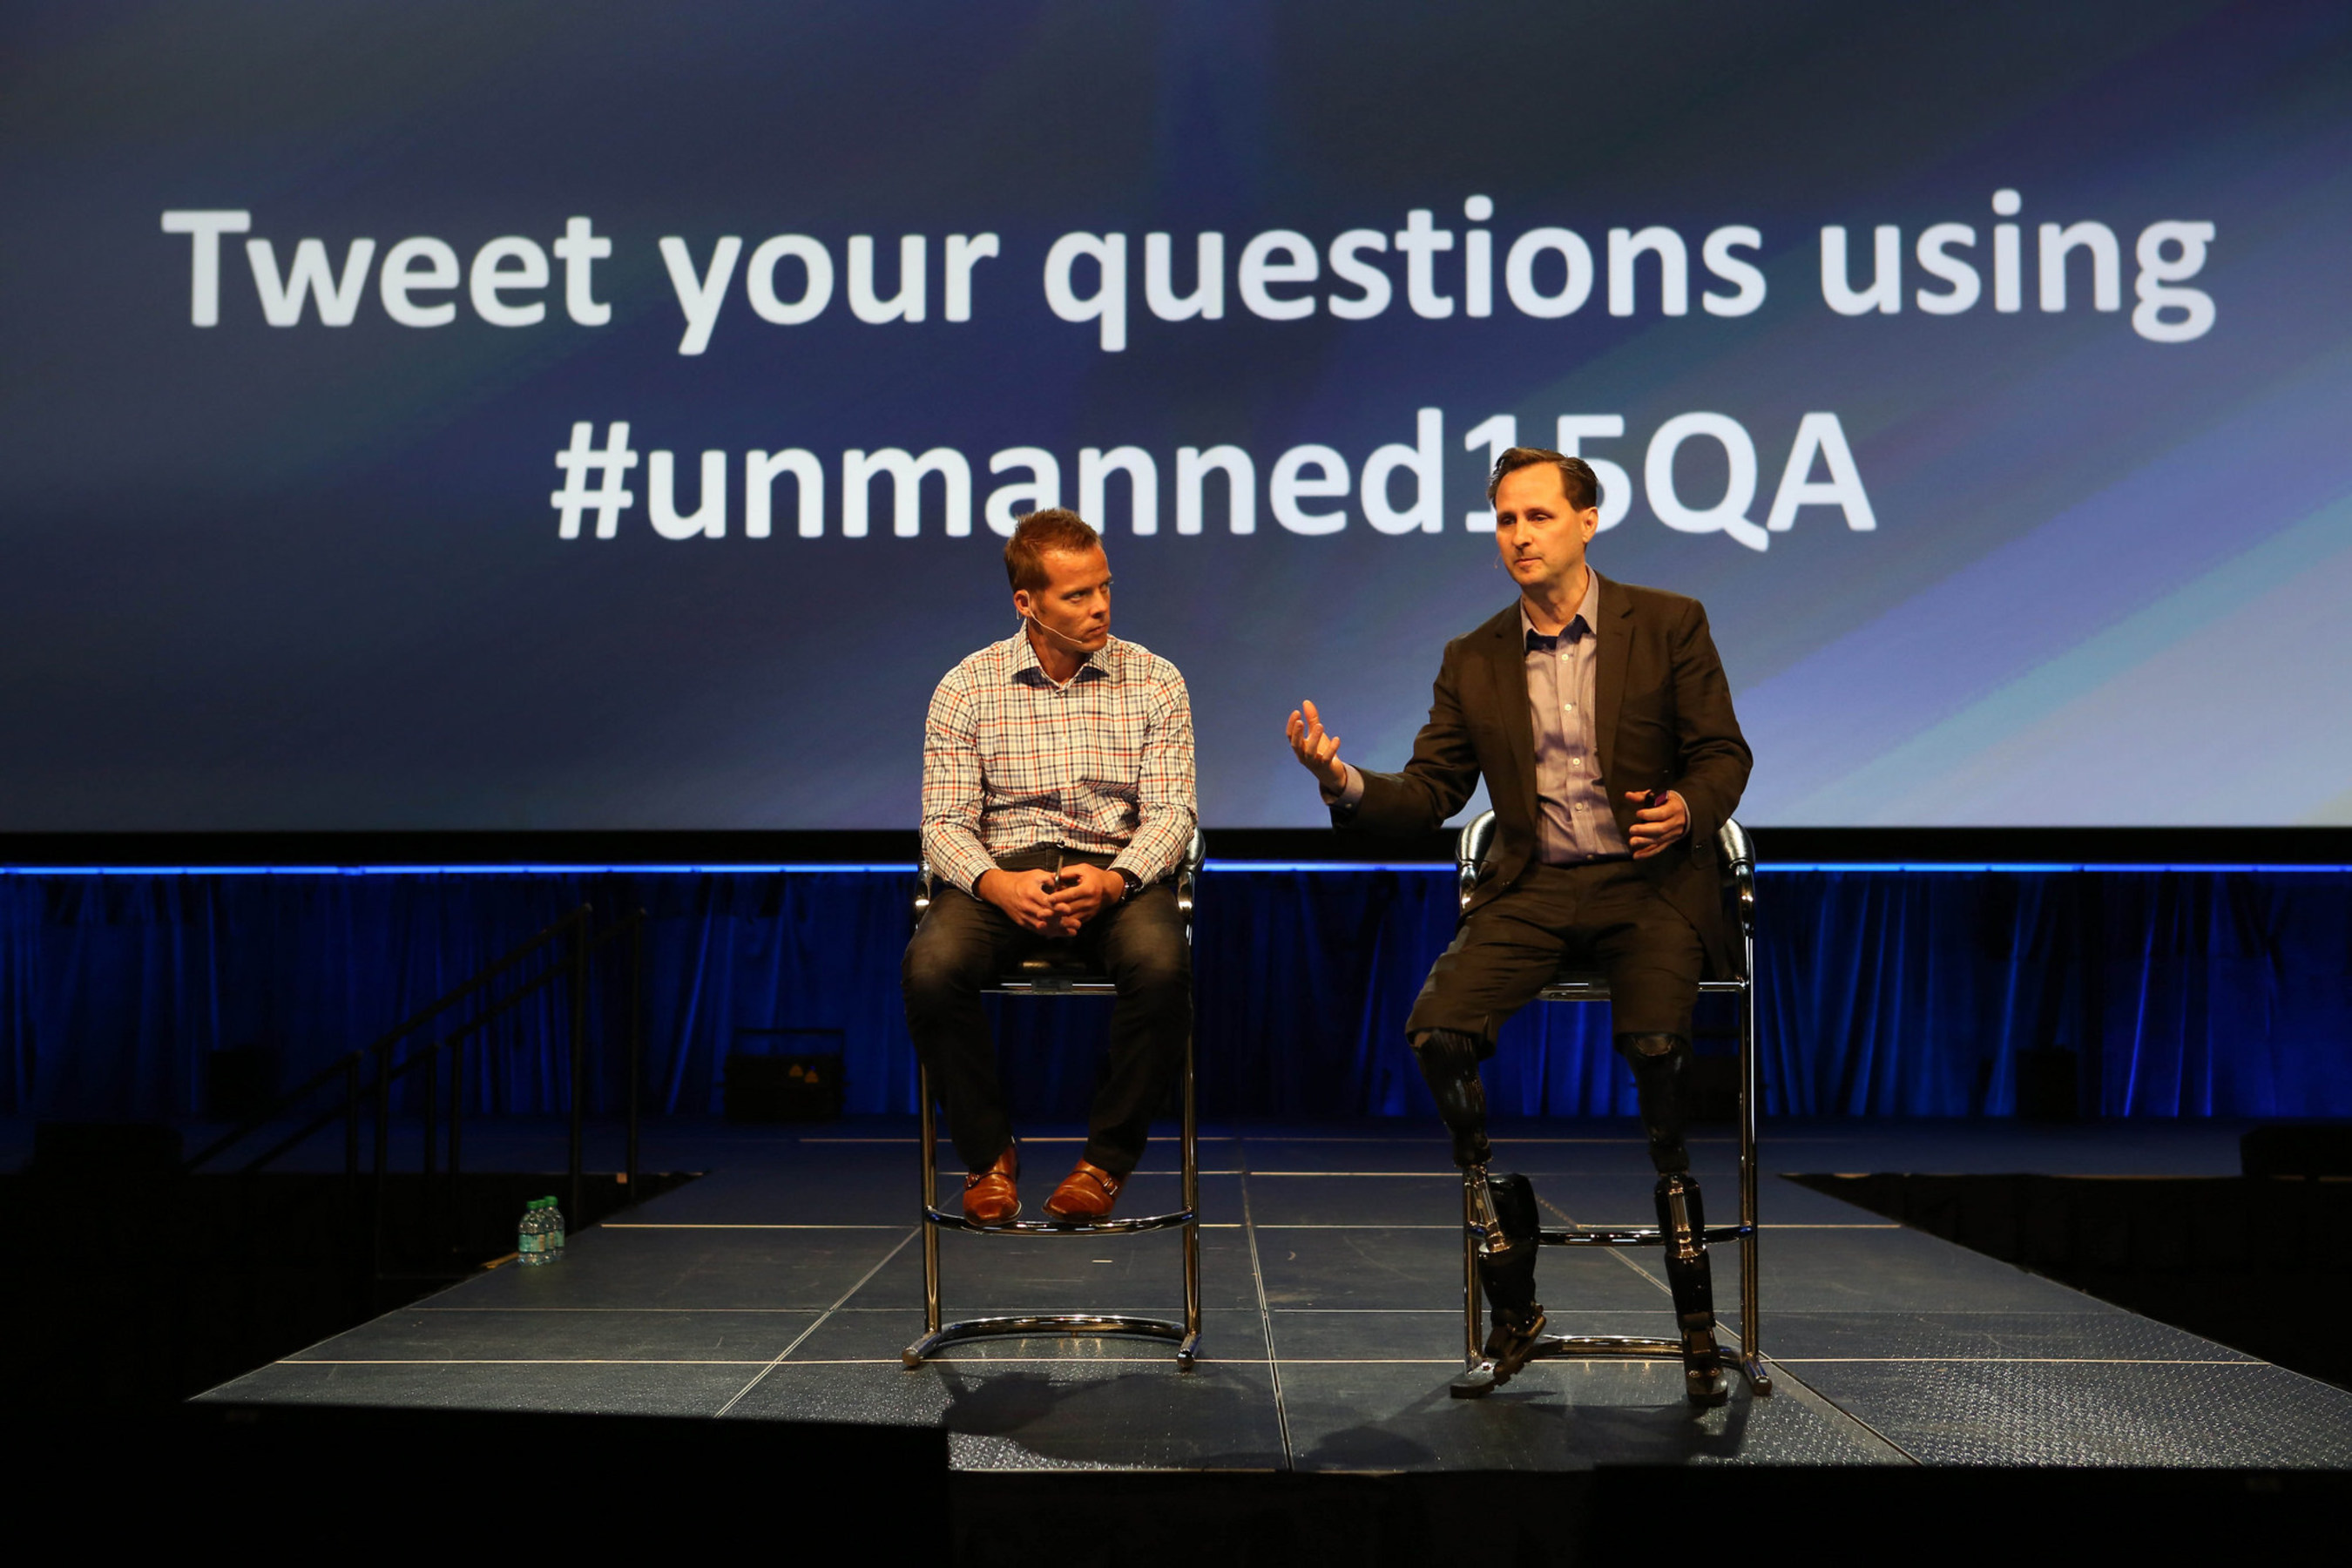 Dr. Hugh Herr answers questions about the future of bionics at AUVSI's conference in 2015, hosted by Colin Guinn of 3D Robotics.